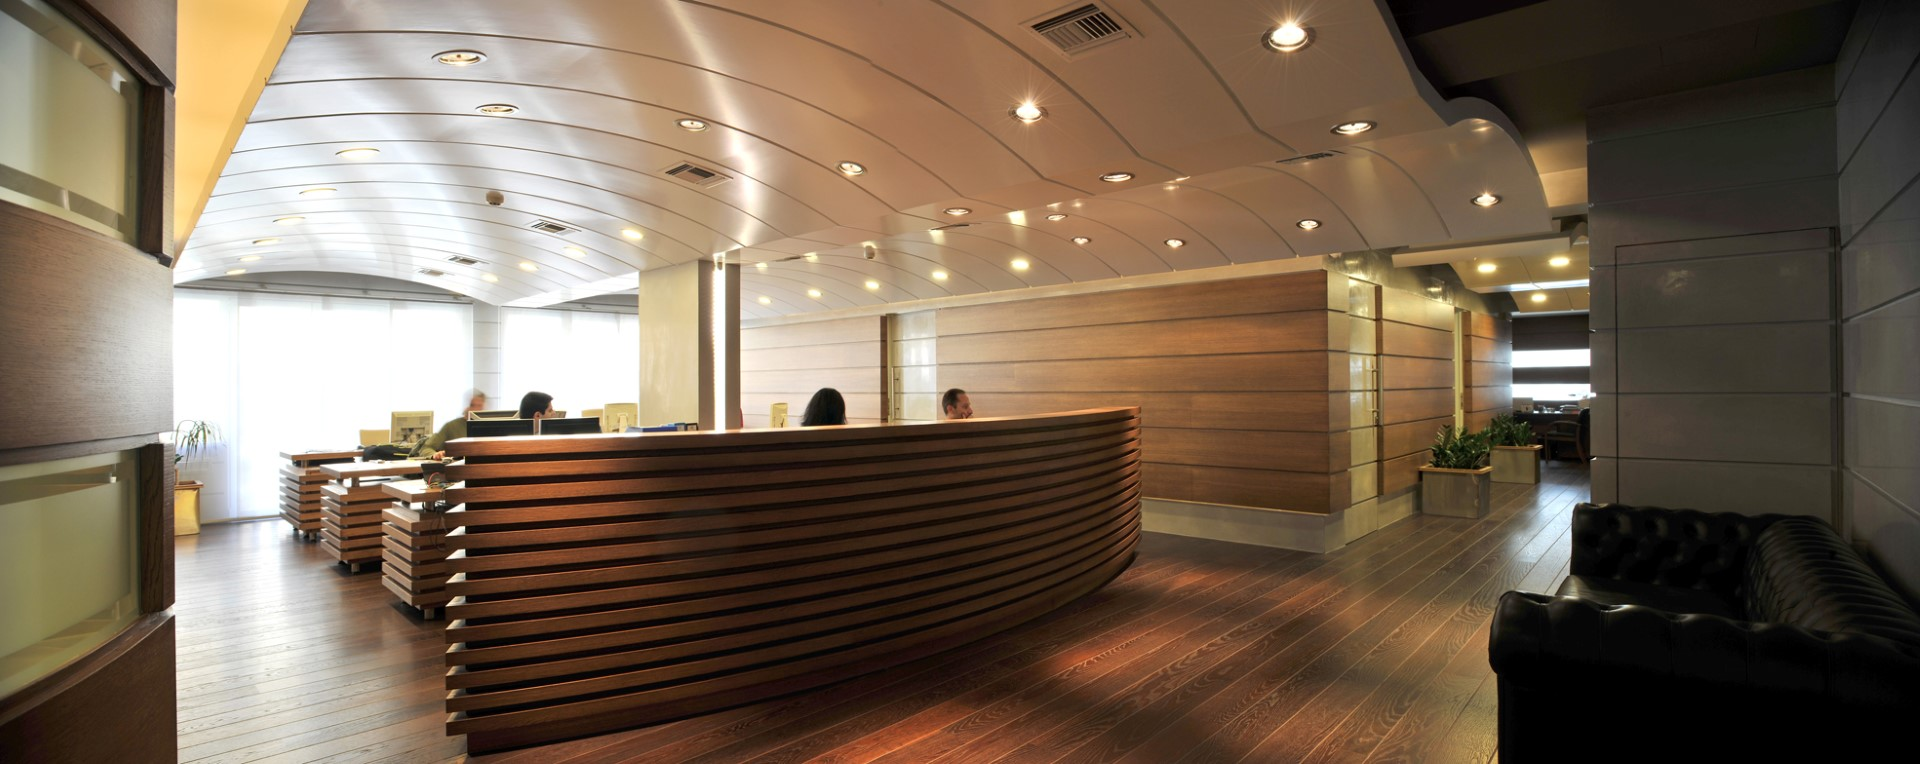 Dynamic Securities S.A. Office Space Redesign